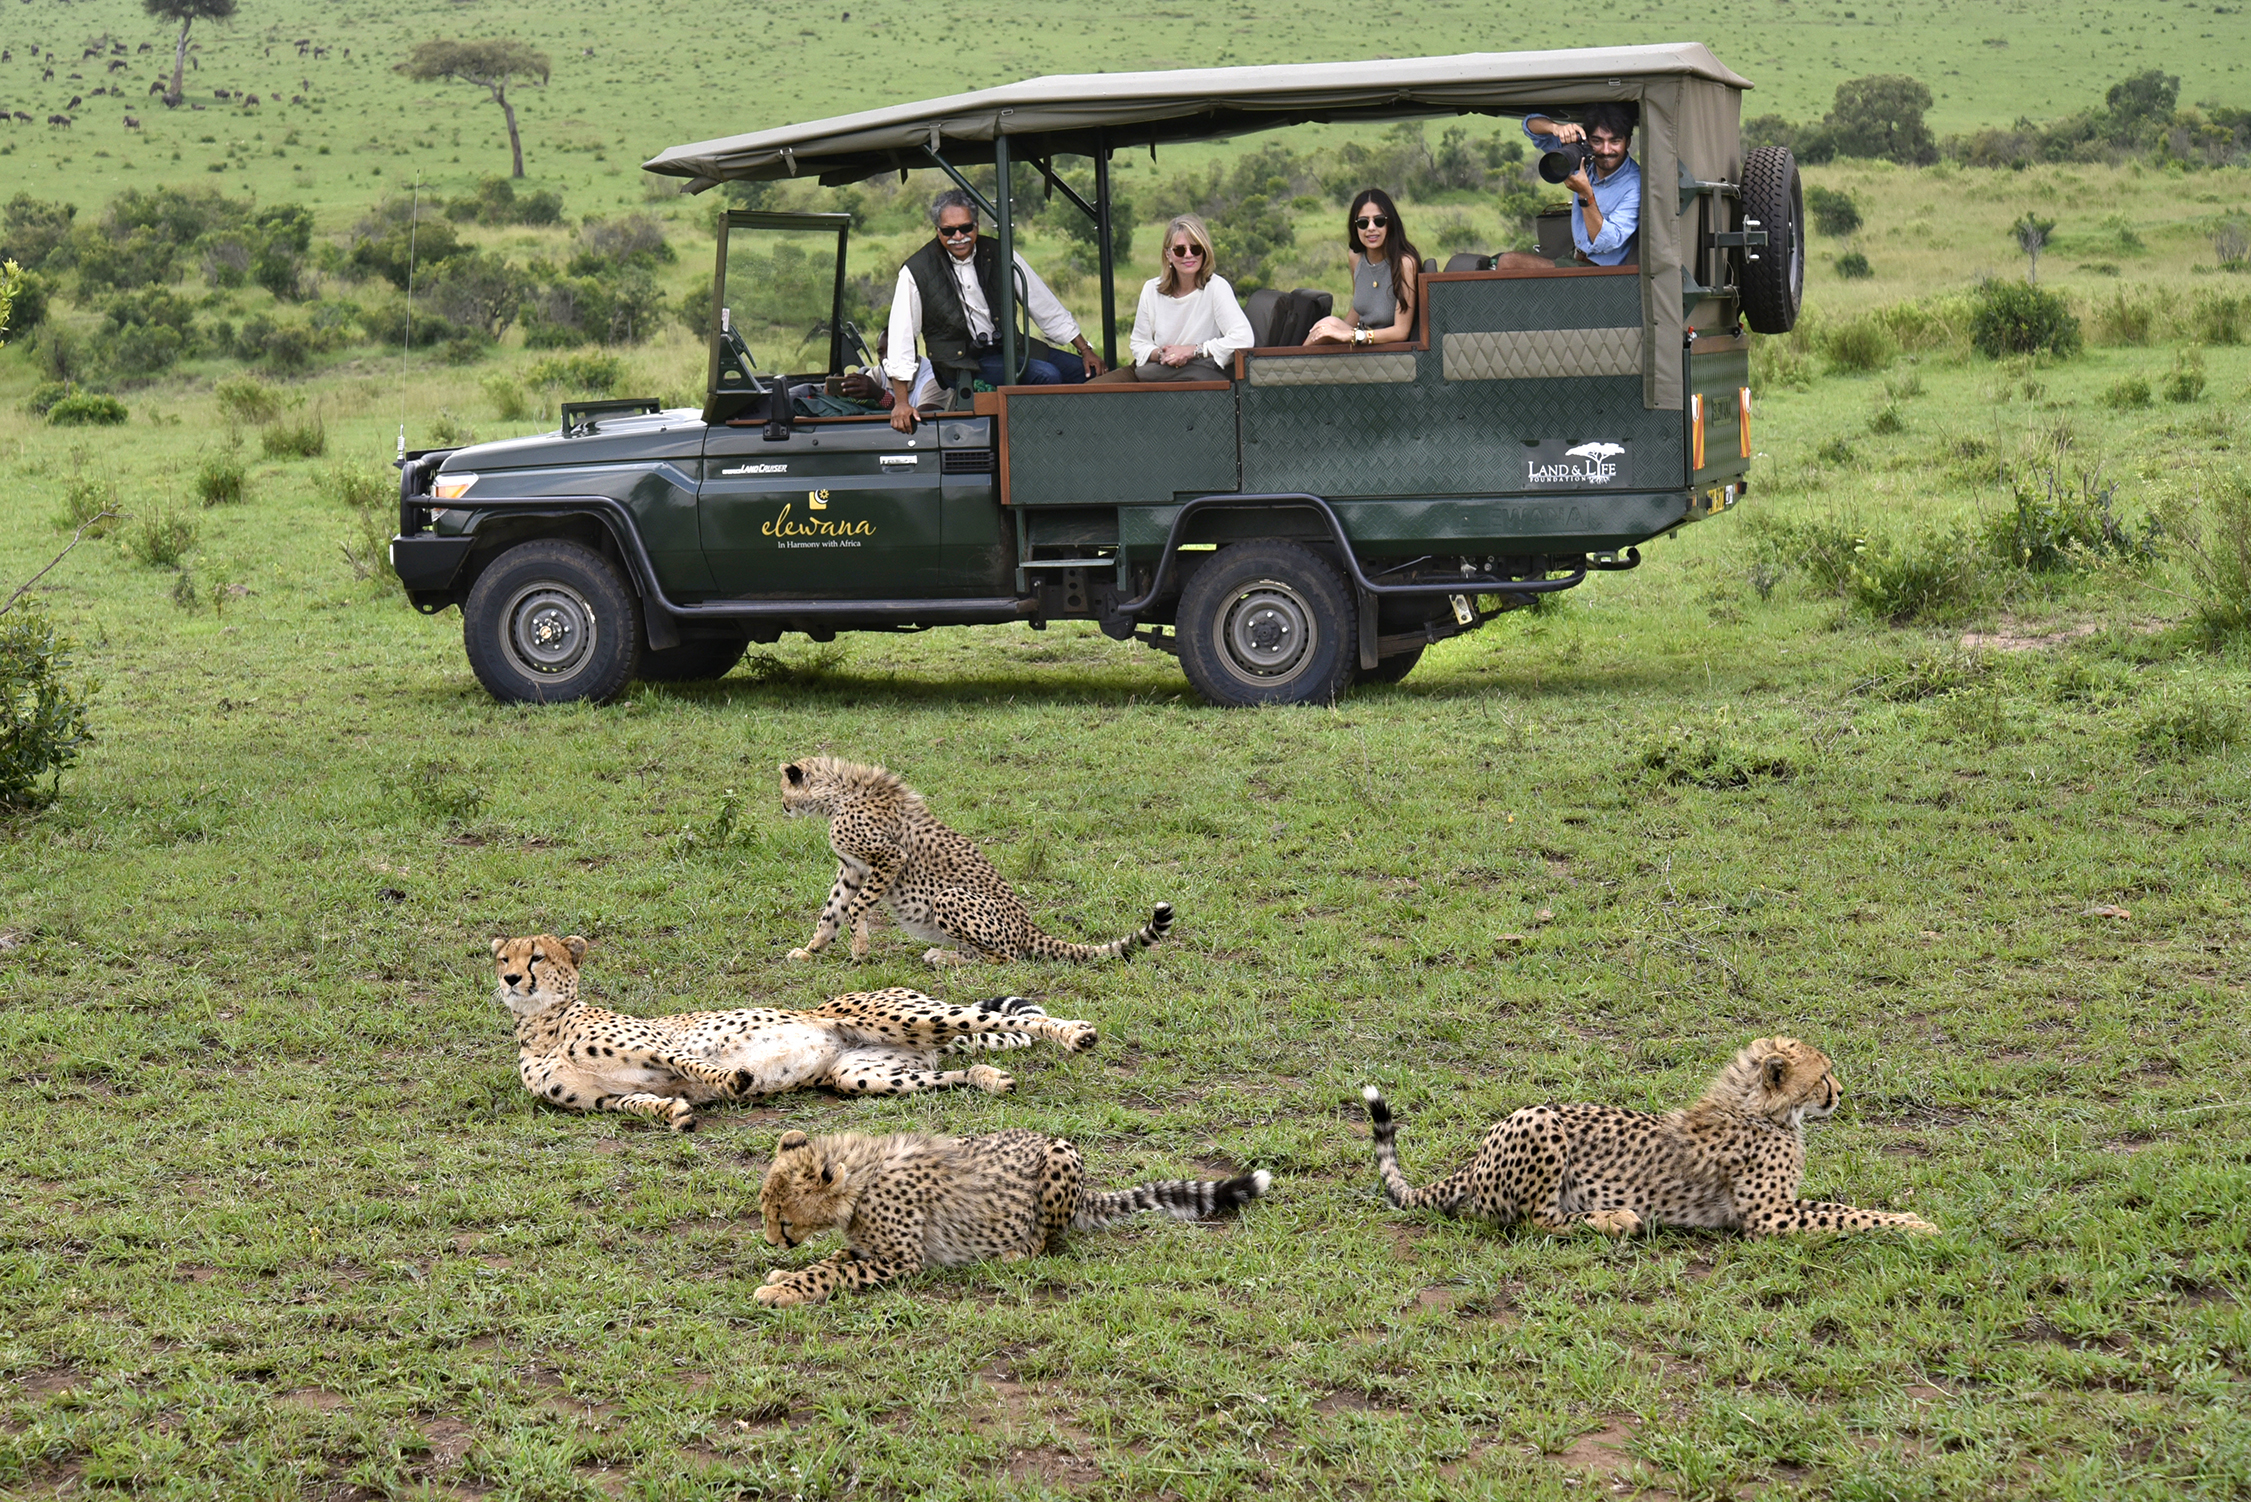 The Pintos view leopards from a car